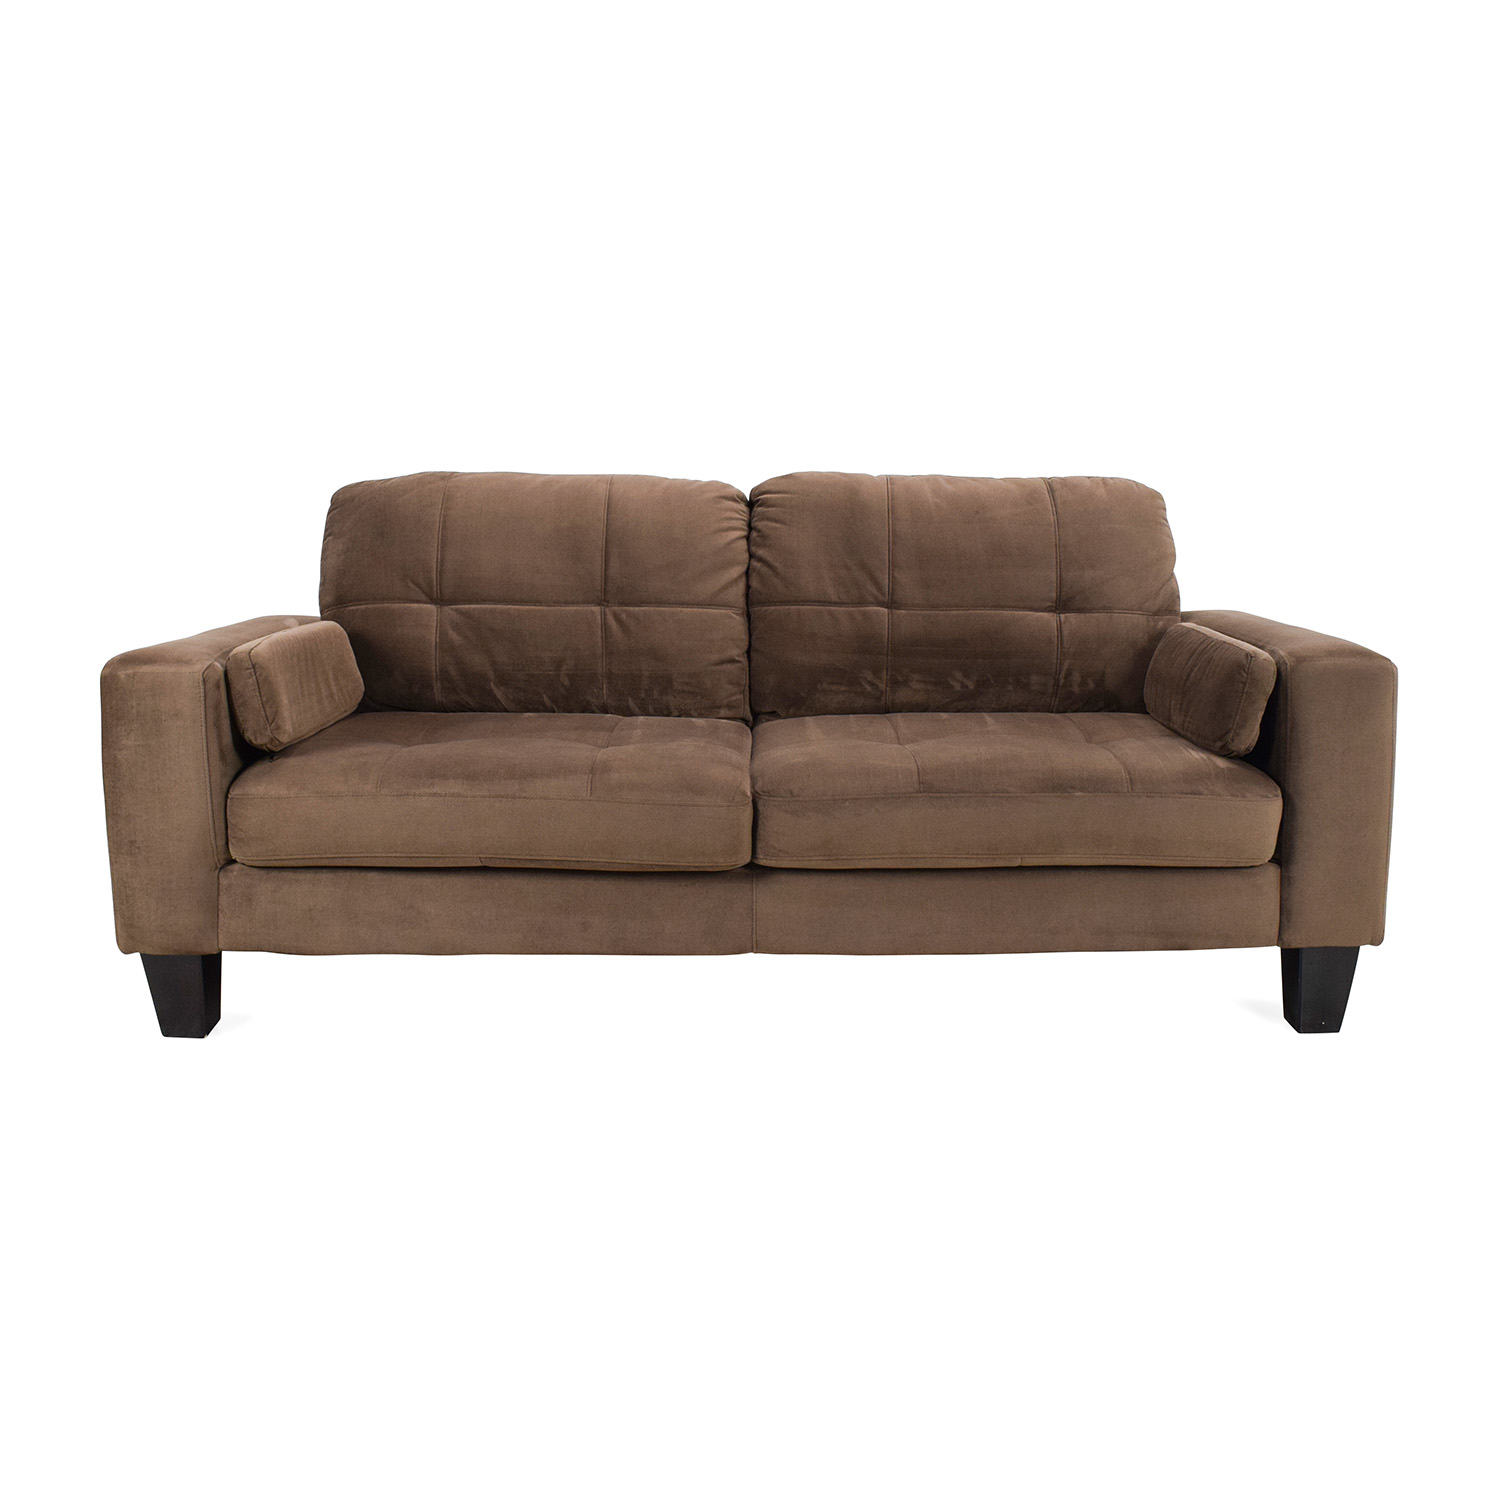 Jennifer Convertibles Sofa Online